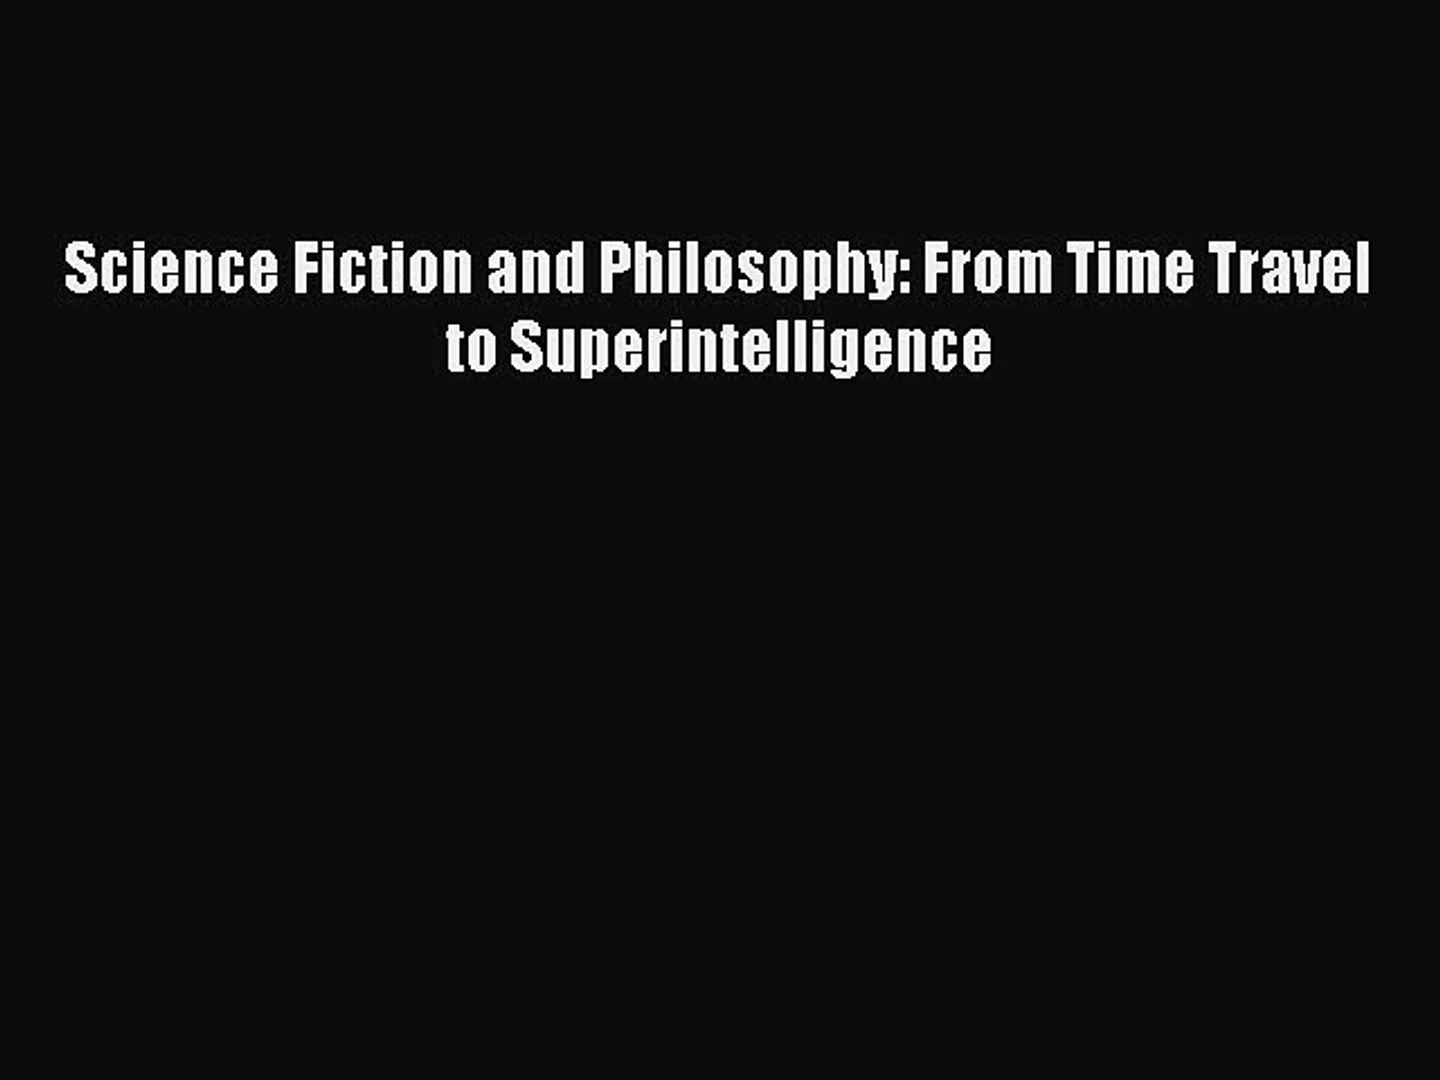 From Time Travel to Superintelligence